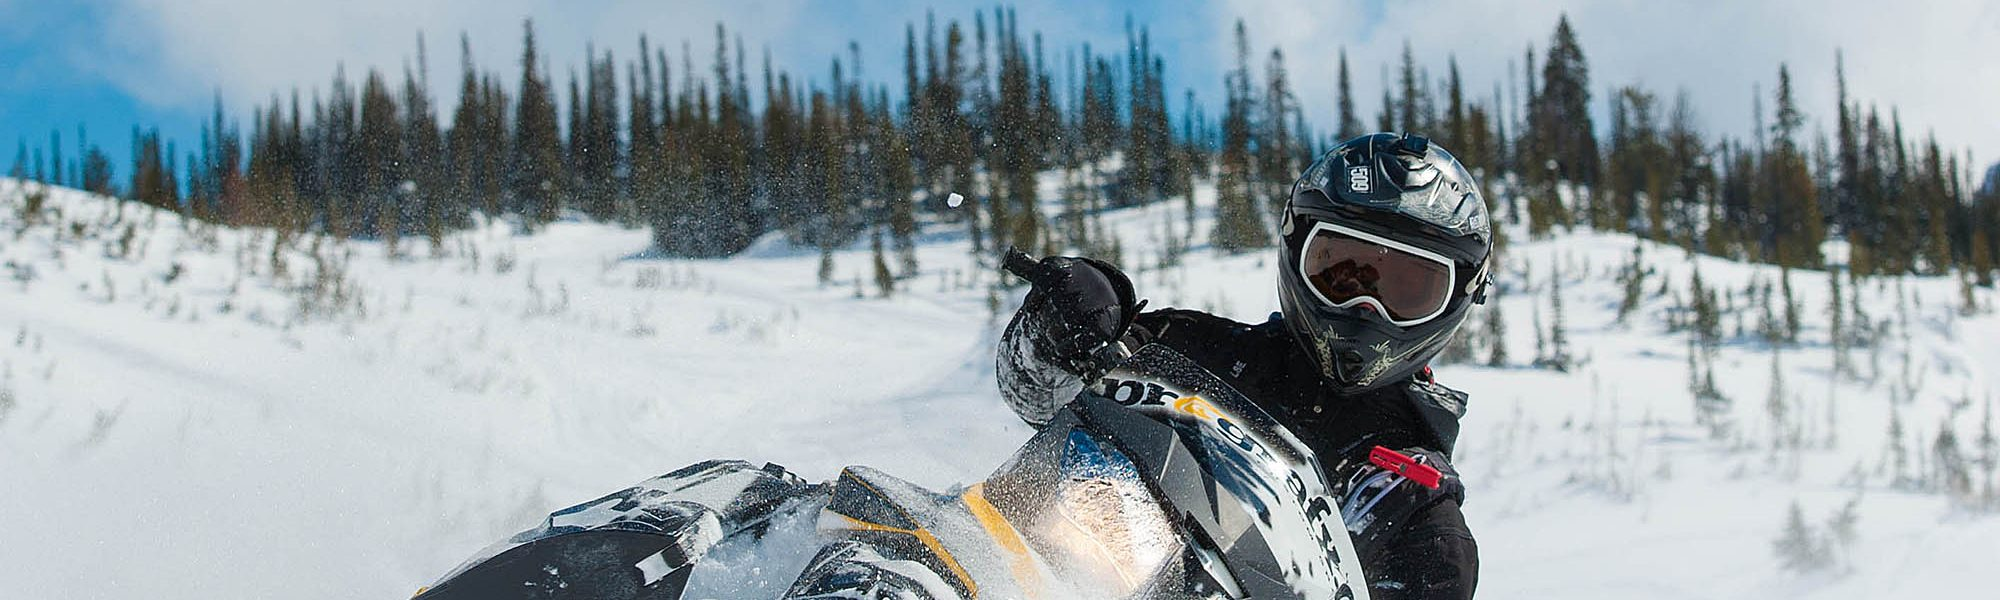 Snowmobile Tours and Rentals in Golden, BC – Rocky Mountain